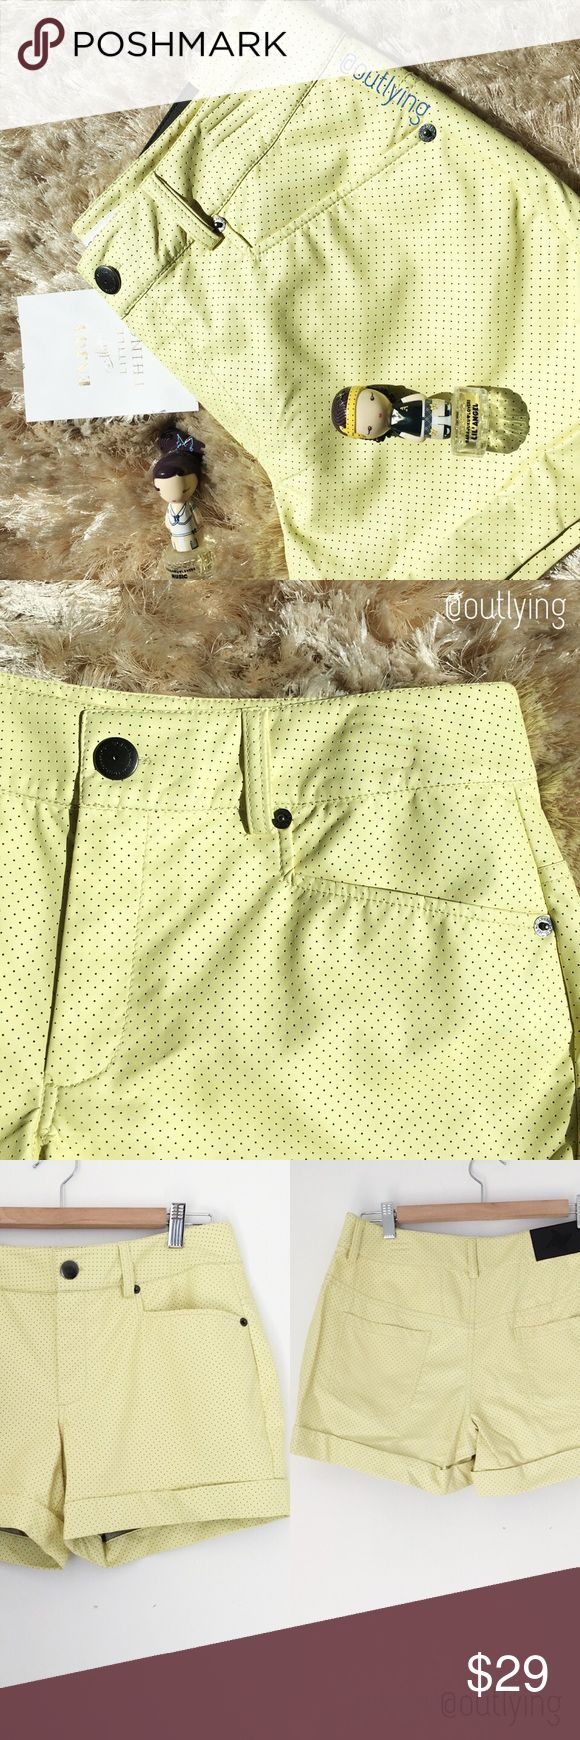 "🔥BOGO! BCBGENERATION Perforated Leather Shorts 🔥BUY 1 GET 1 FREE! BCBGENERATION Pale Yellow Vegan Perforated Leather Shorts, NWT, Size 26,(runs big so listed as a medium) rise 10"" waist 31"" hip 41"" inseam 4.5"" fully lined, functional pockets and button zipper fly closure, soft inside of the fabric is like a cotton twill feel. BCBGeneration Shorts"